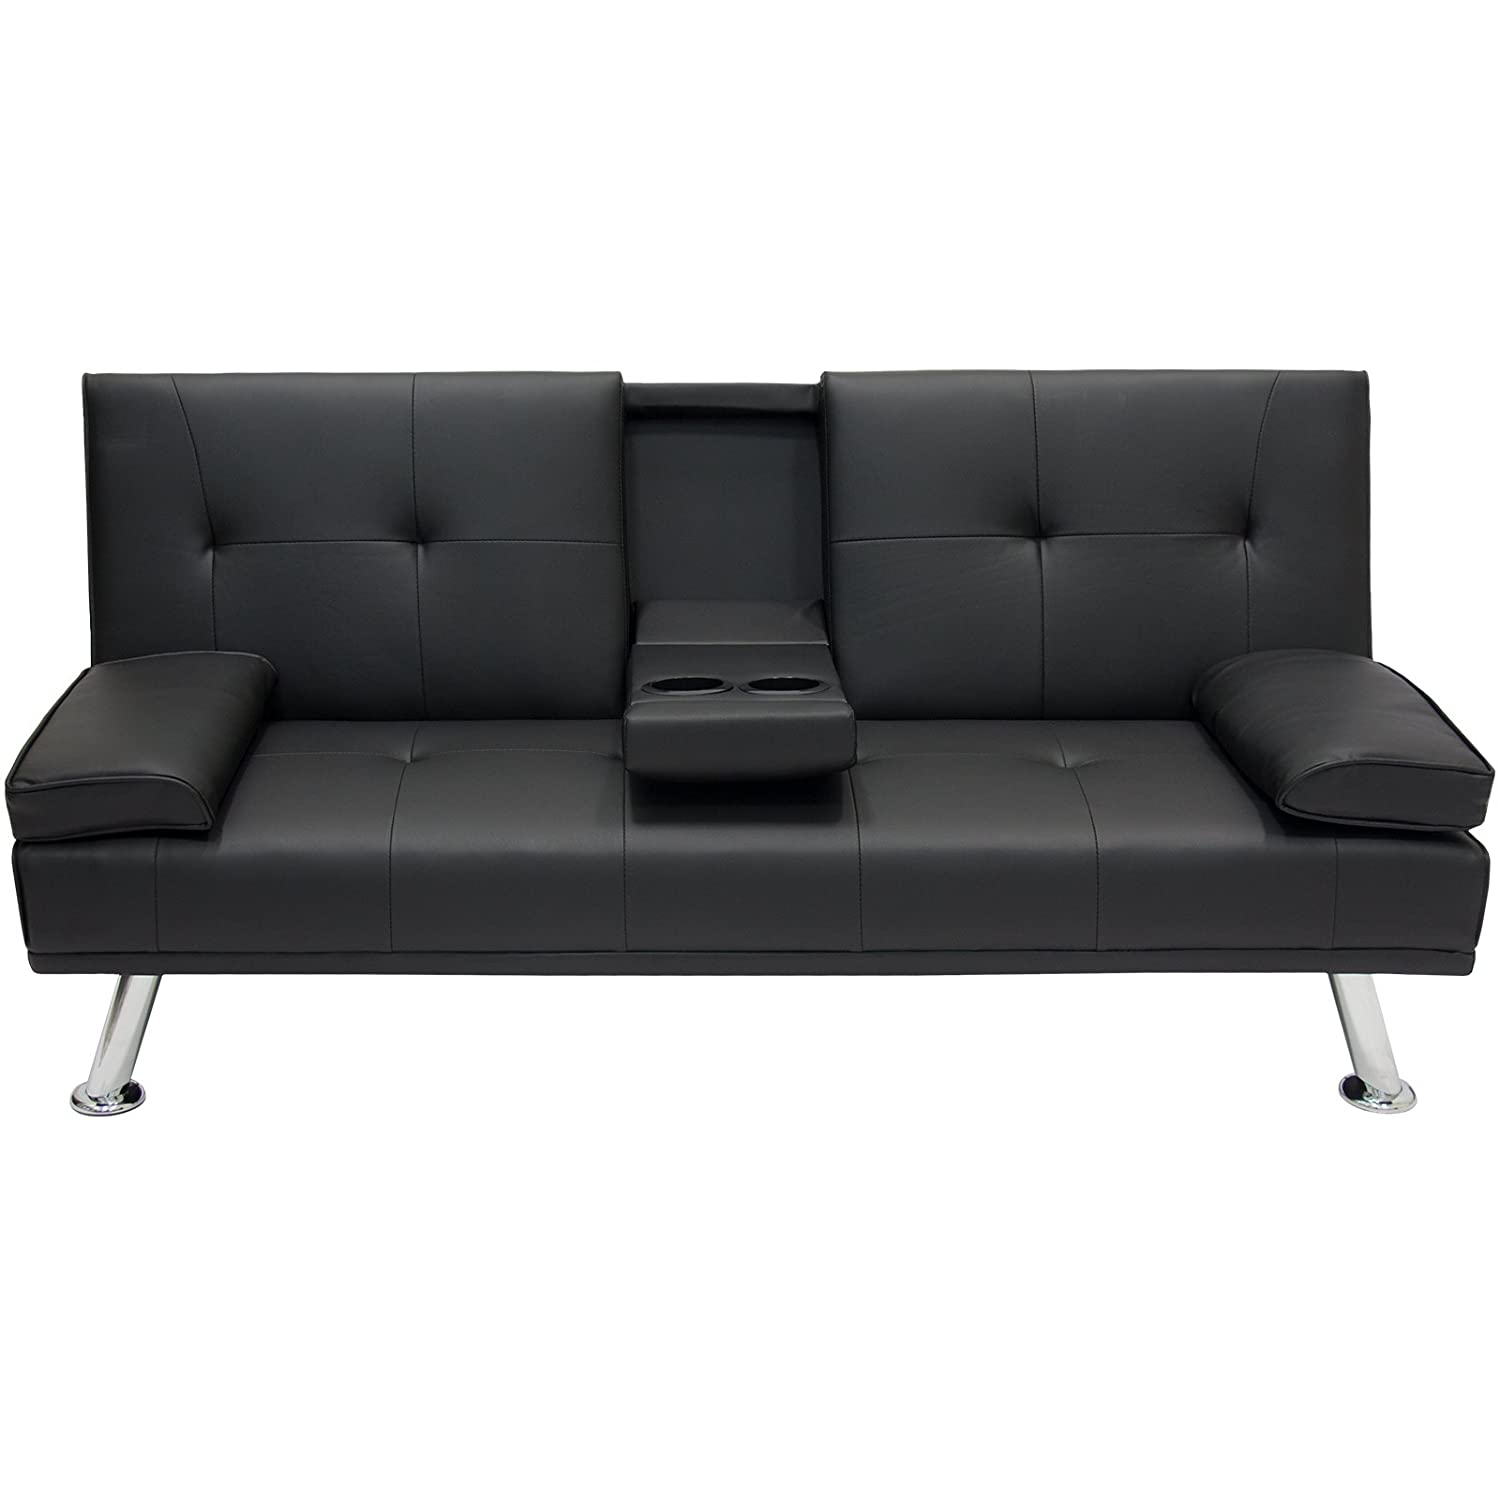 Discount Modern Sofas: Cheap Couches For Sale Under $200